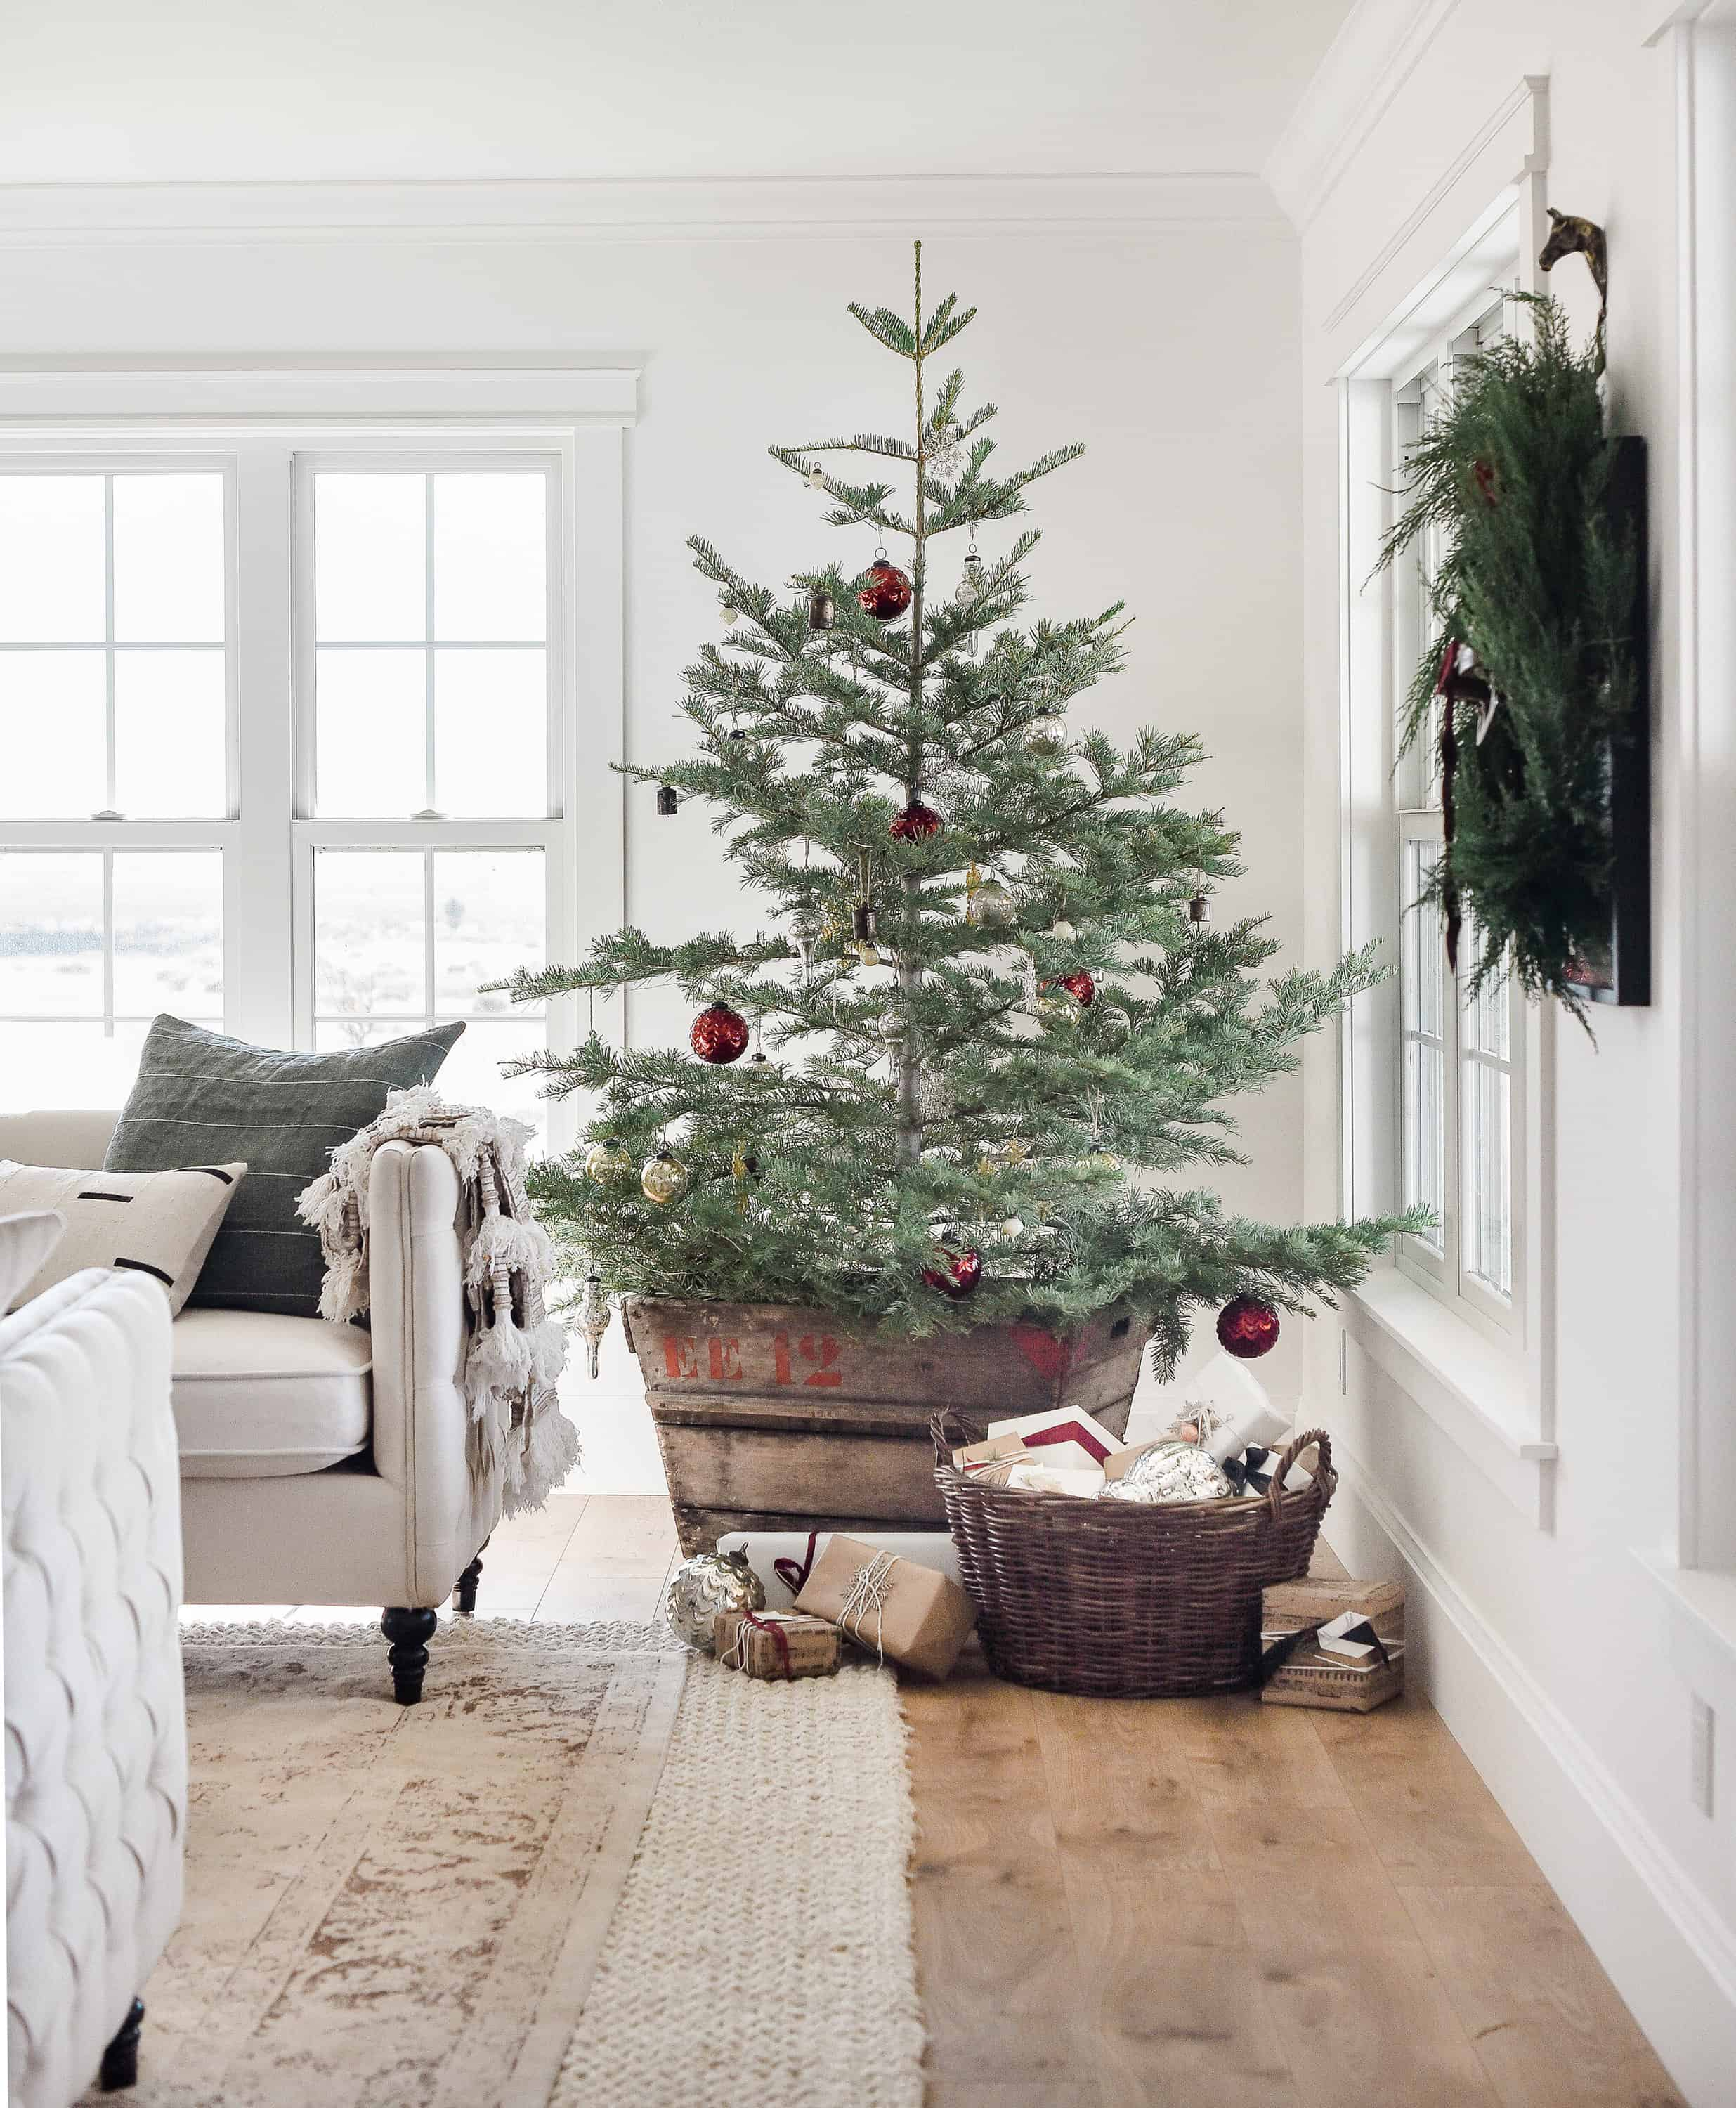 If you're wondering where to find real Christmas trees near you, or how to pick the best real Christmas tree, you're in luck! Today we're sharing everything you need to know about real Christmas trees: from how much they cost to how to care for them!